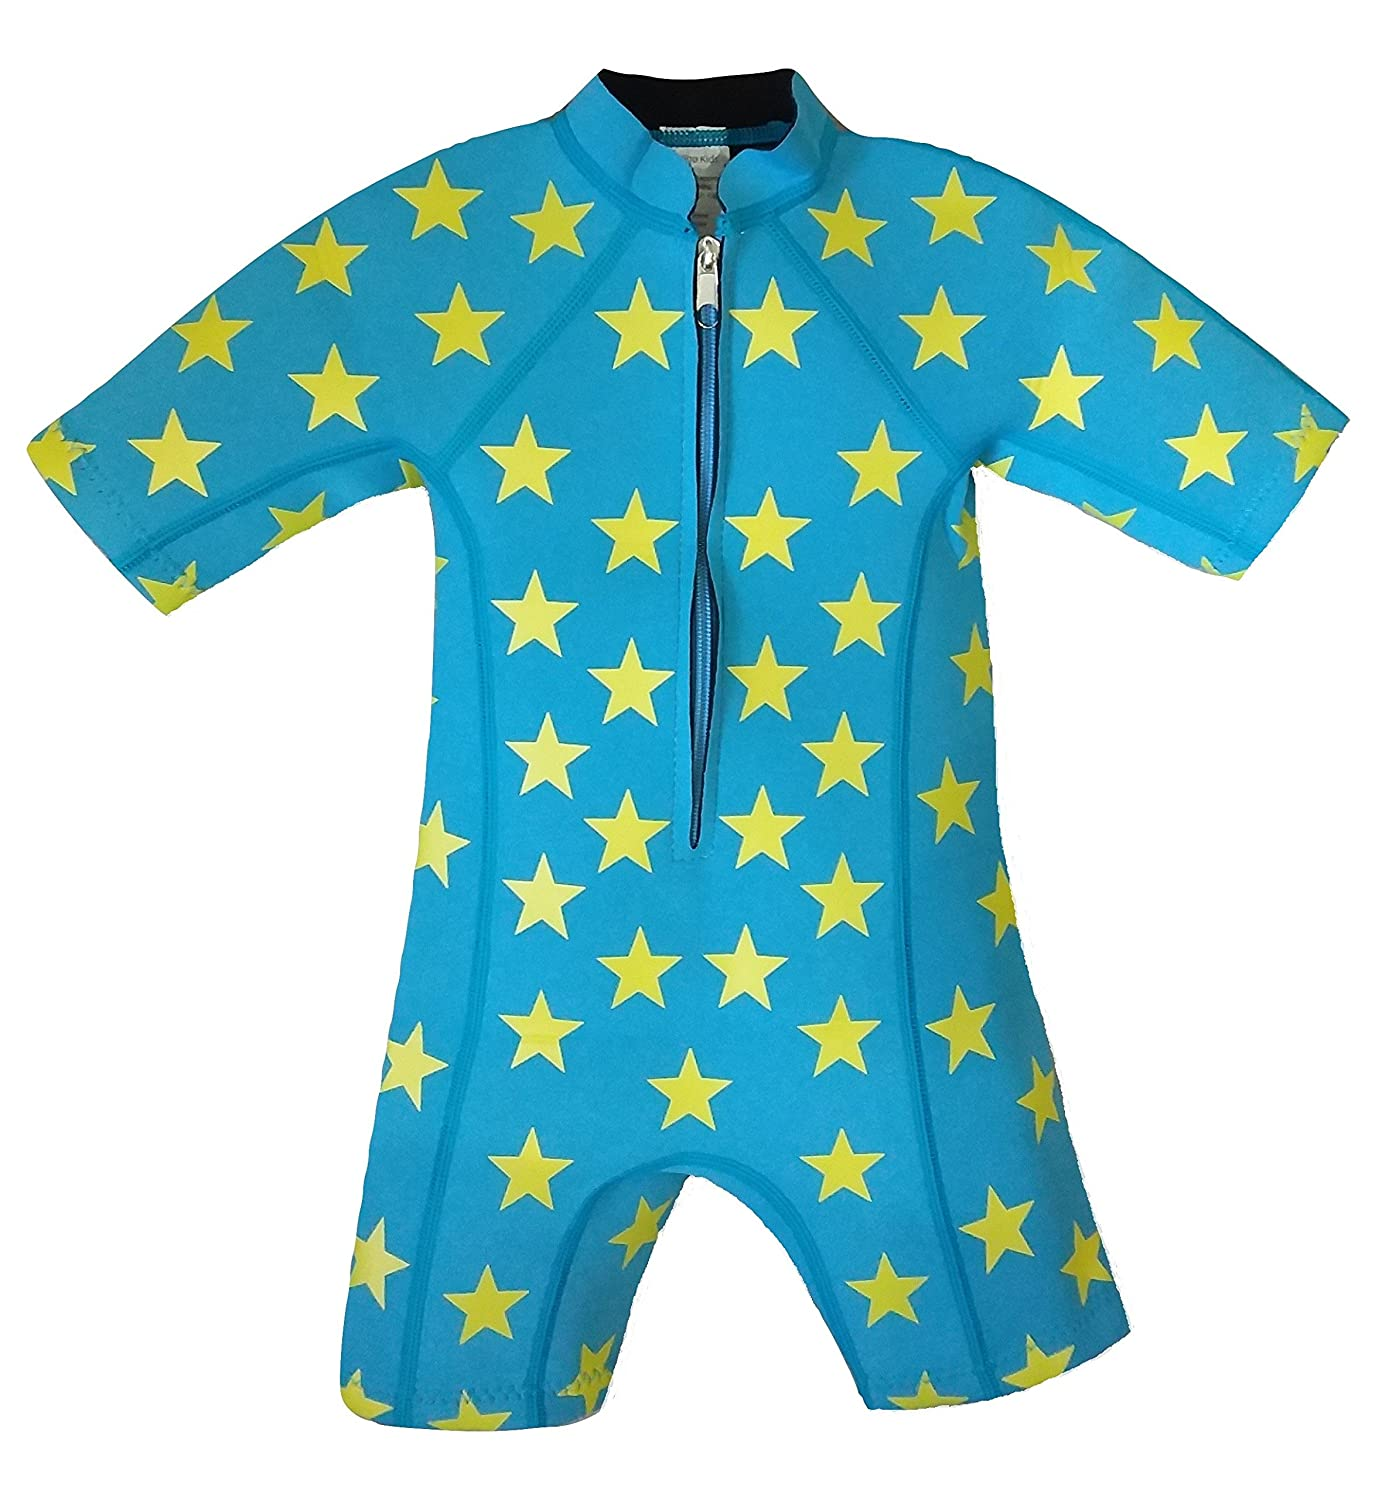 Baby children boy neoprene wetsuit swim suit newborn to 5 years kids toddler blue IndigoKids